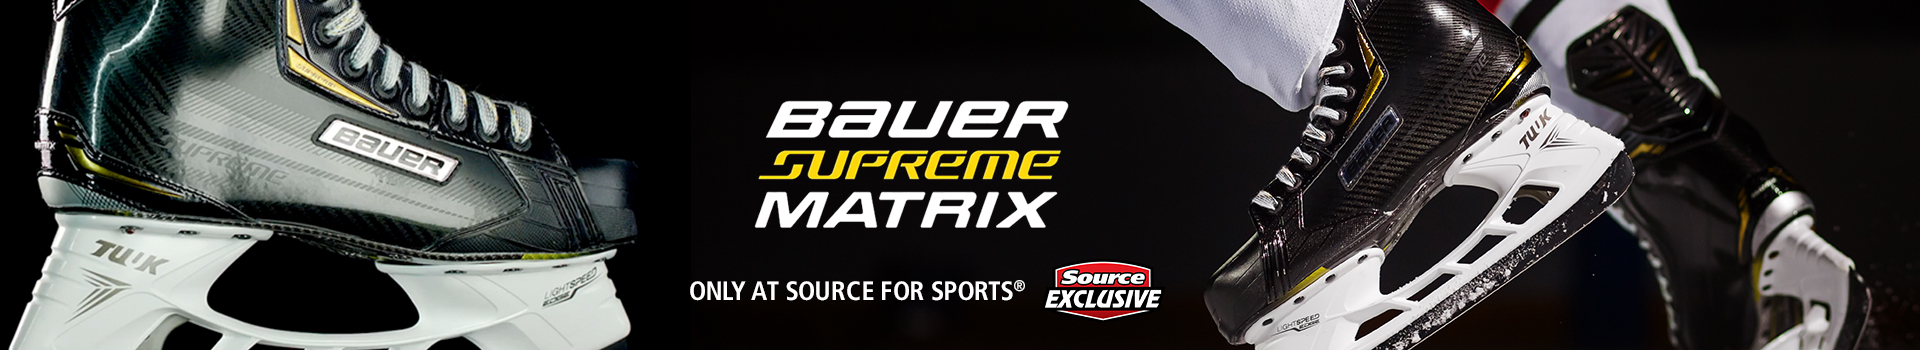 Shop our selection of Bauer Supreme Source Exclusive hockey skates available for sale today at your local Source For Sports near you.